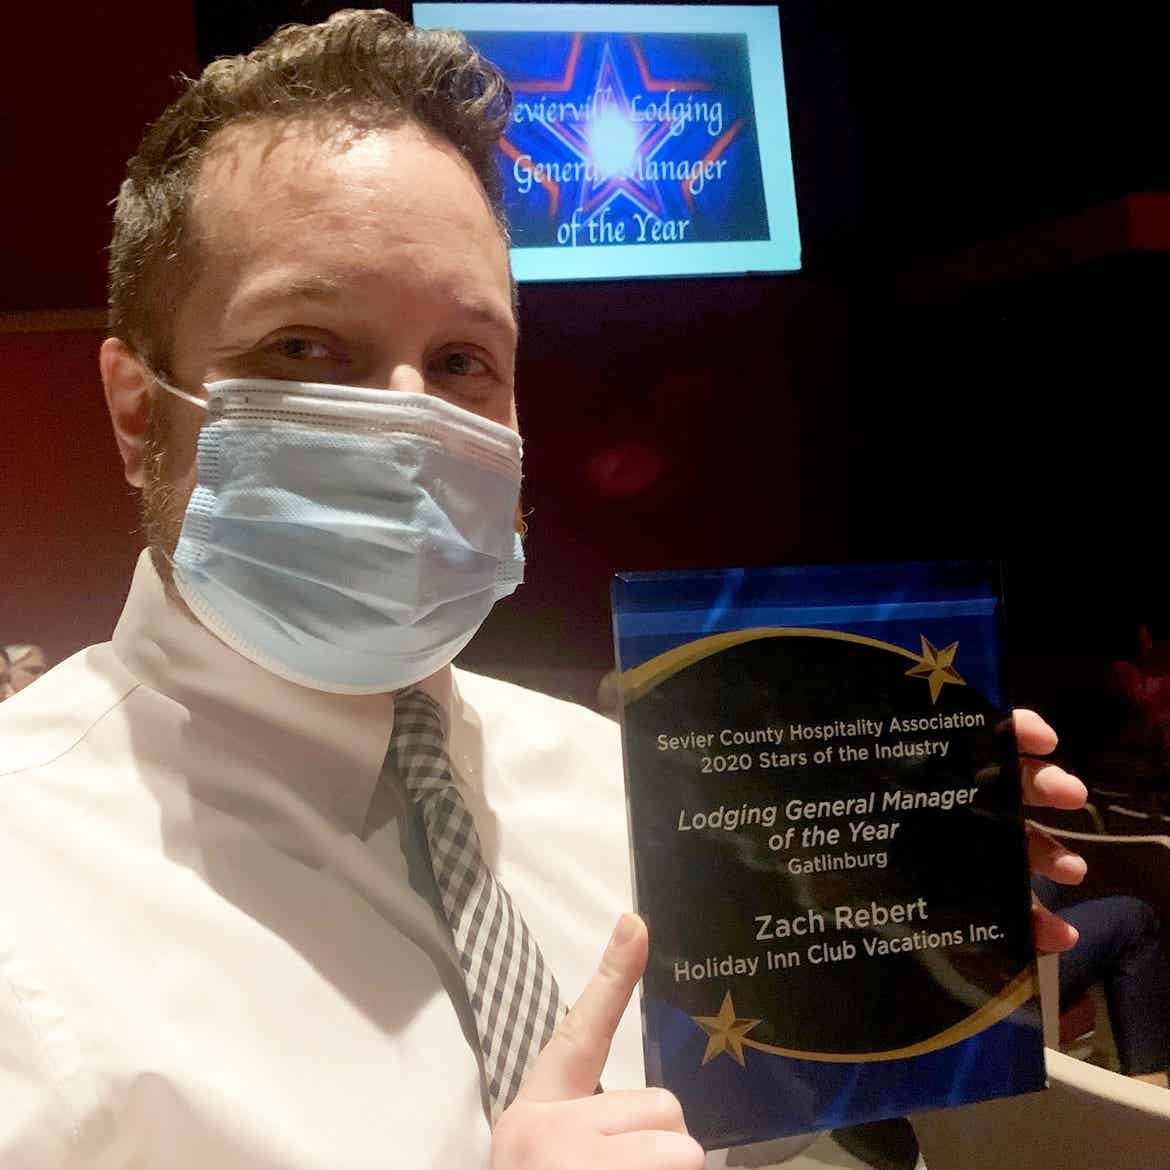 HICV general Manager, Zach Rebert, wears a mask while holding his 'Lodging General Manager of the Year' award.